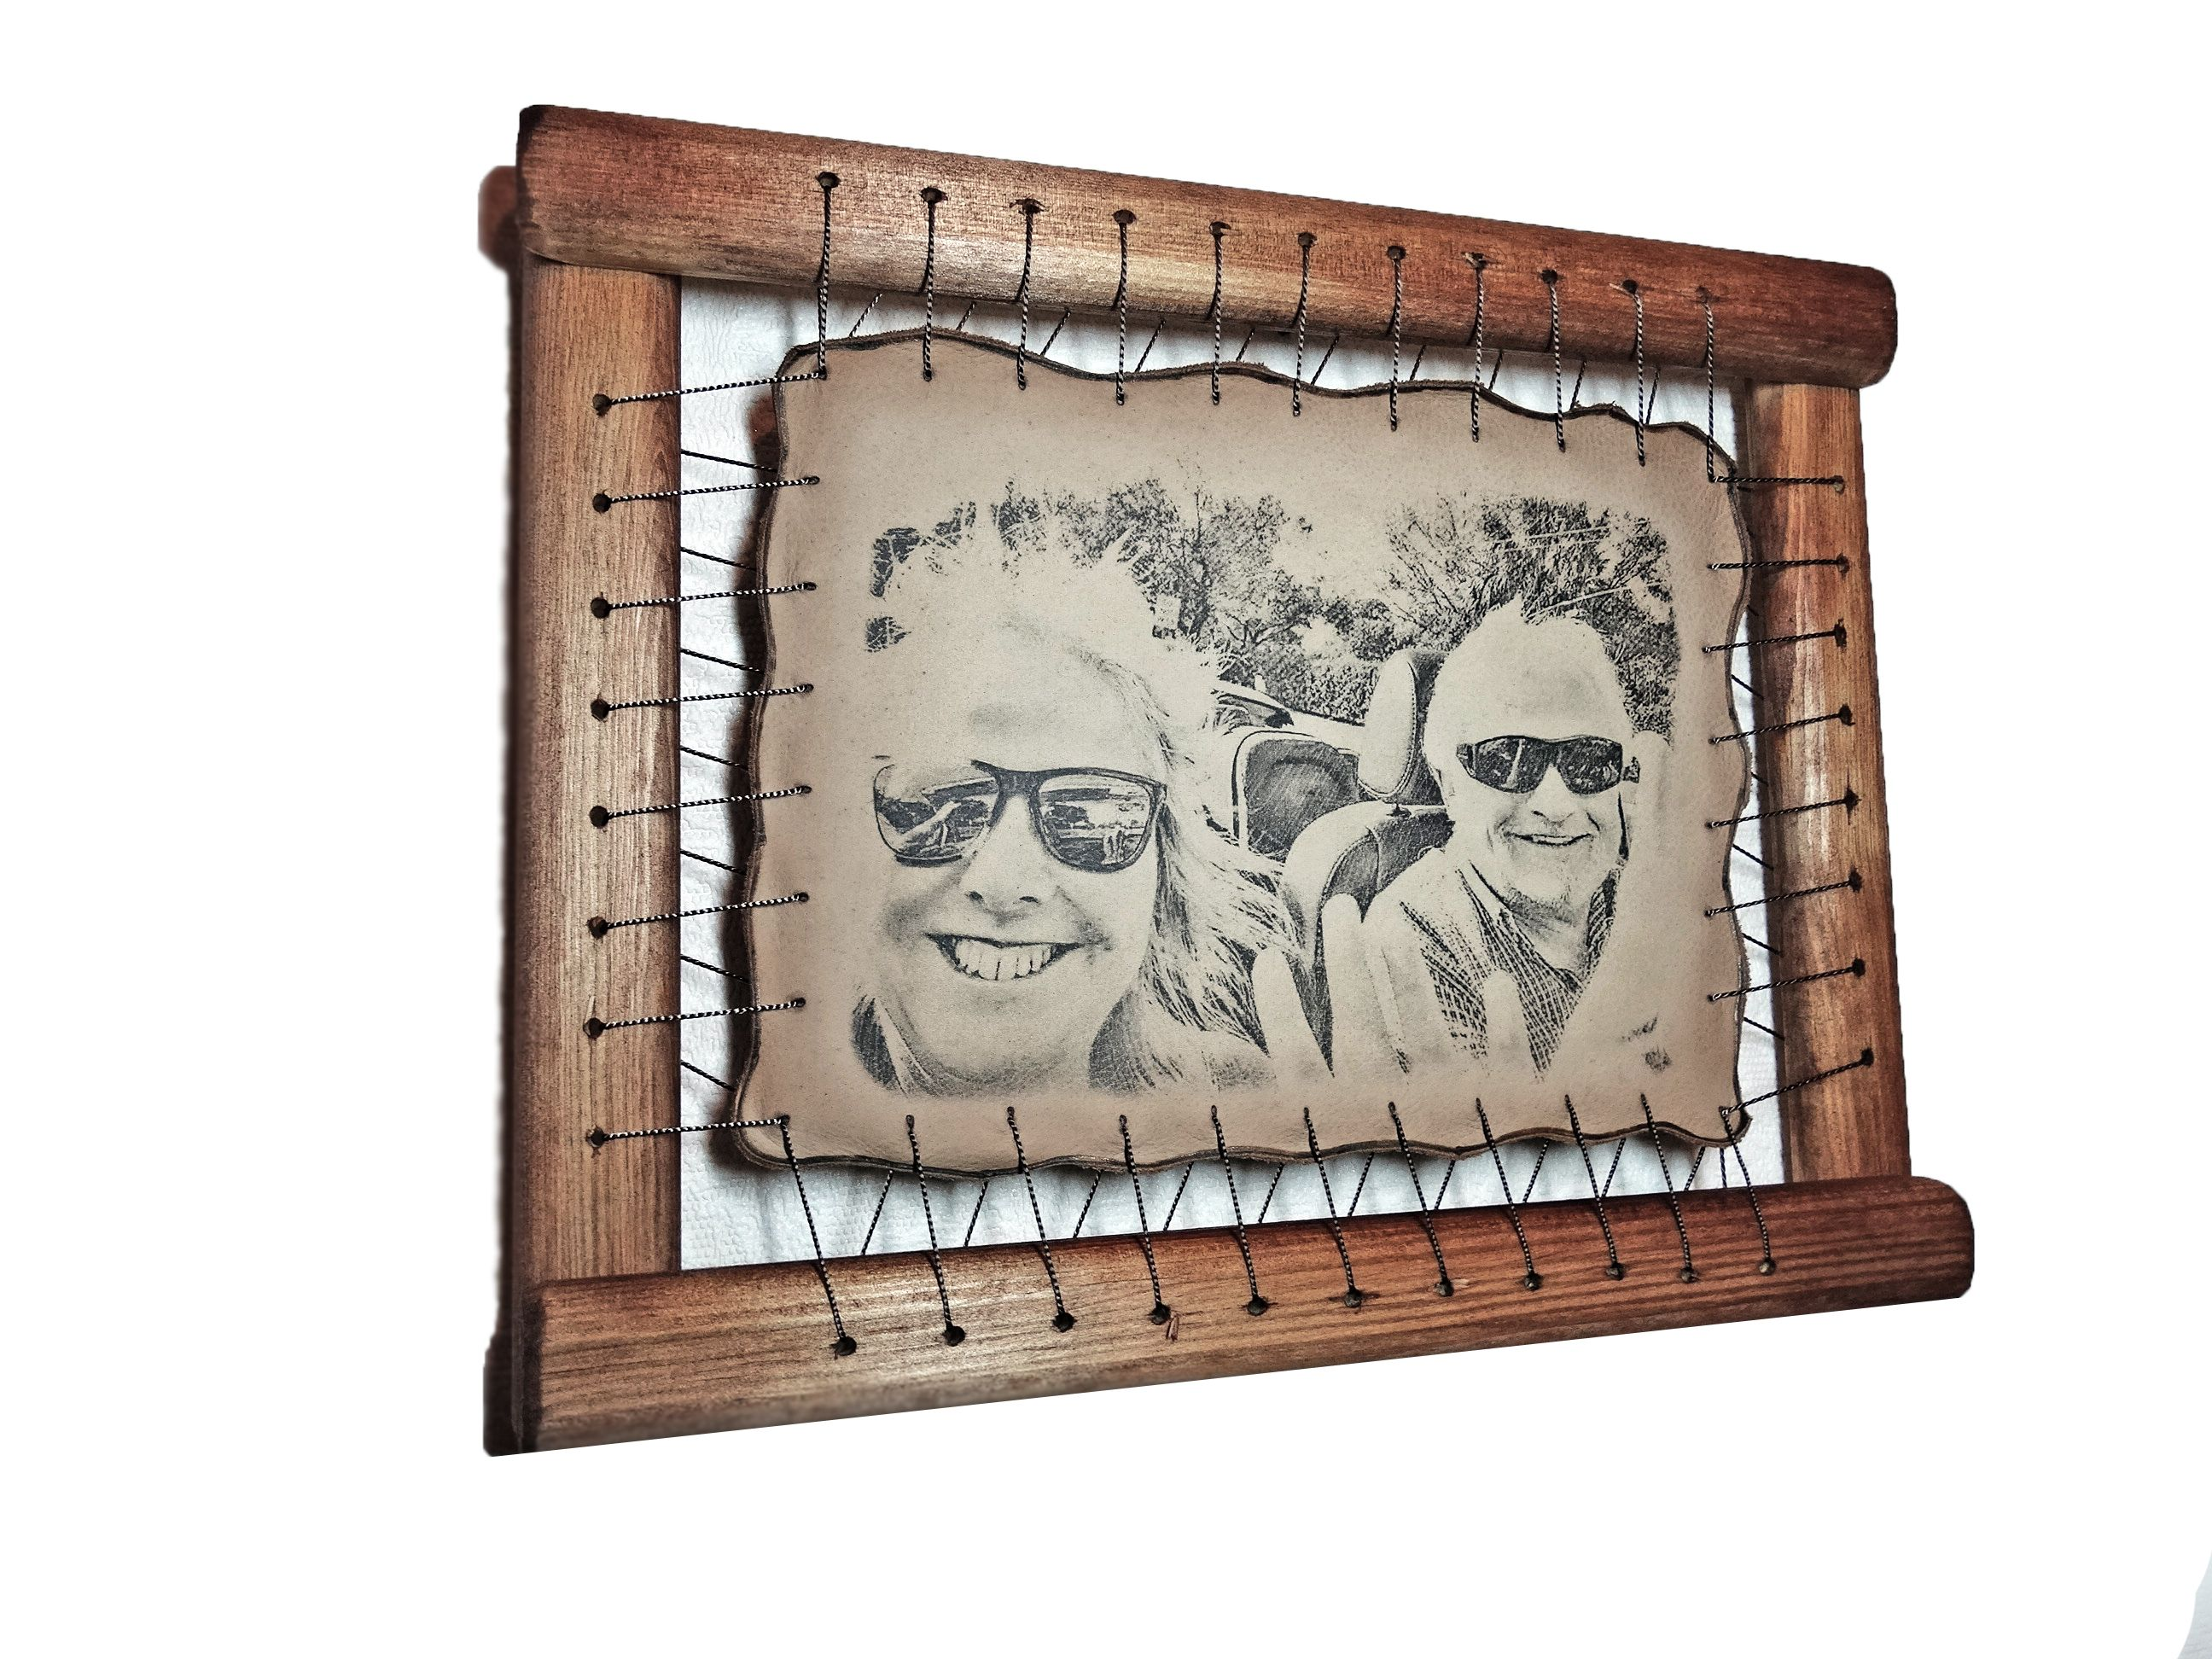 Creative leather anniversary gifts rare hand drawn pyrography creative leather anniversary gifts jeuxipadfo Image collections